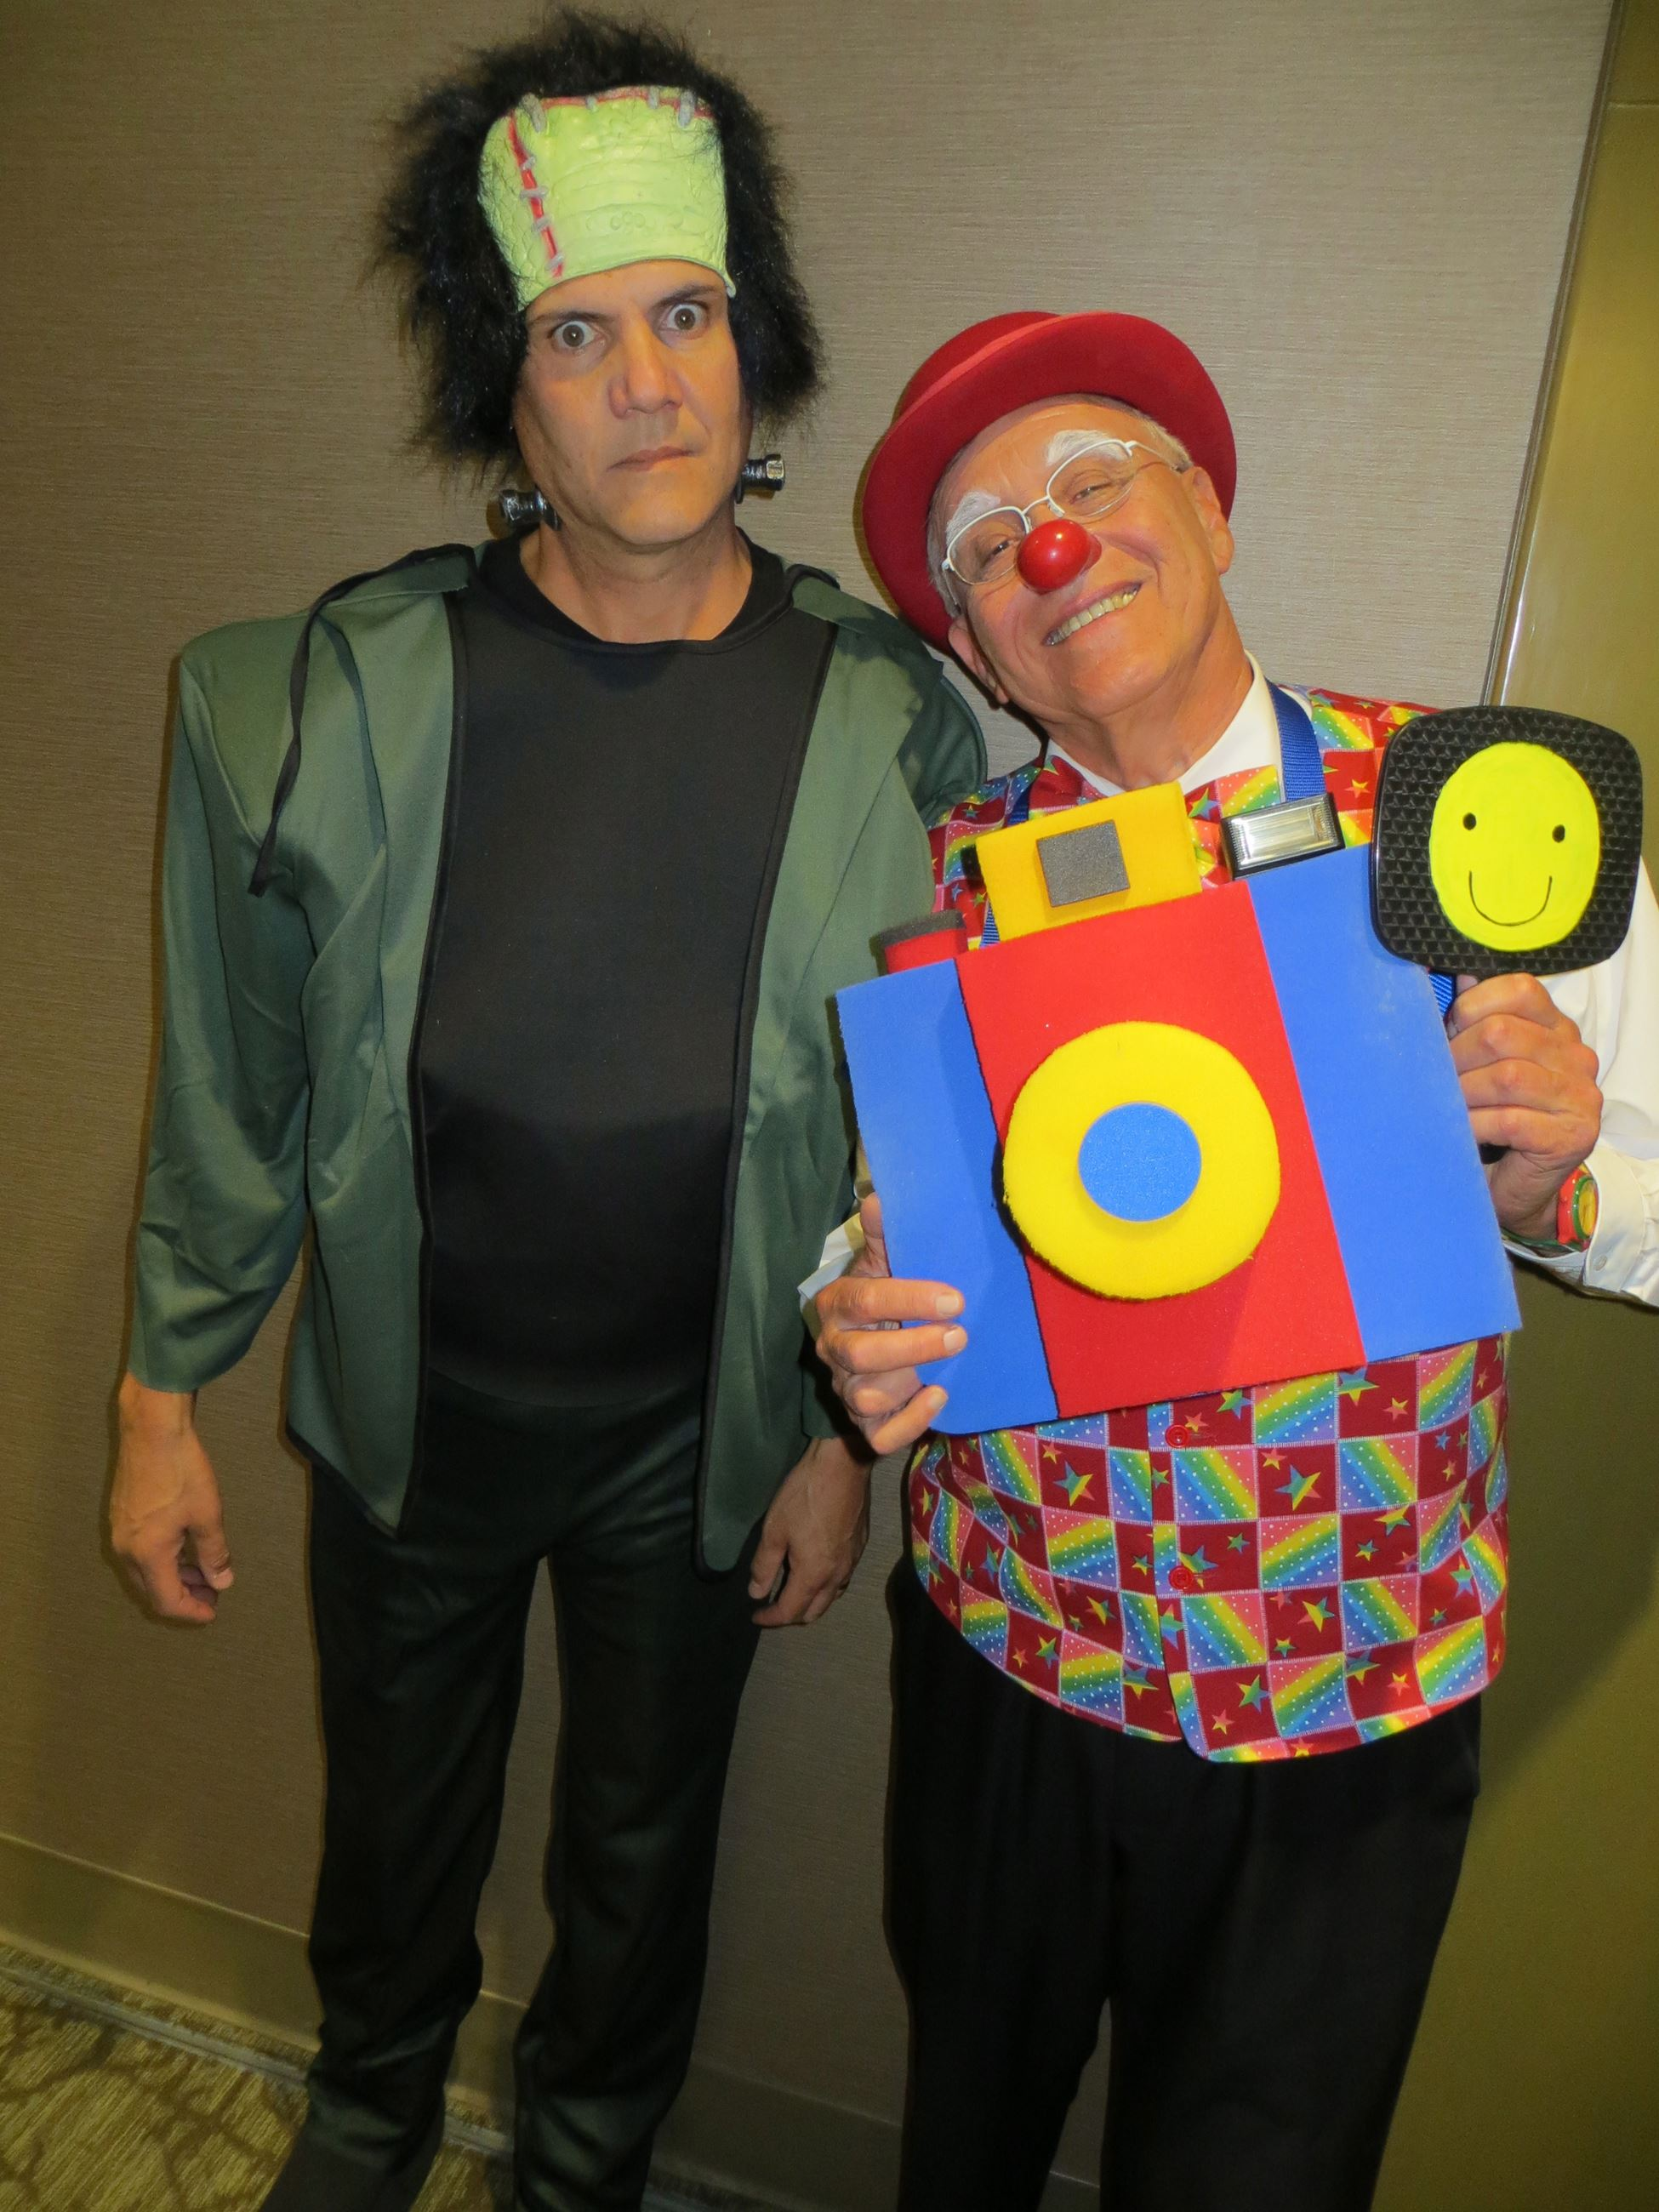 Frankenstein & Clown with Camera